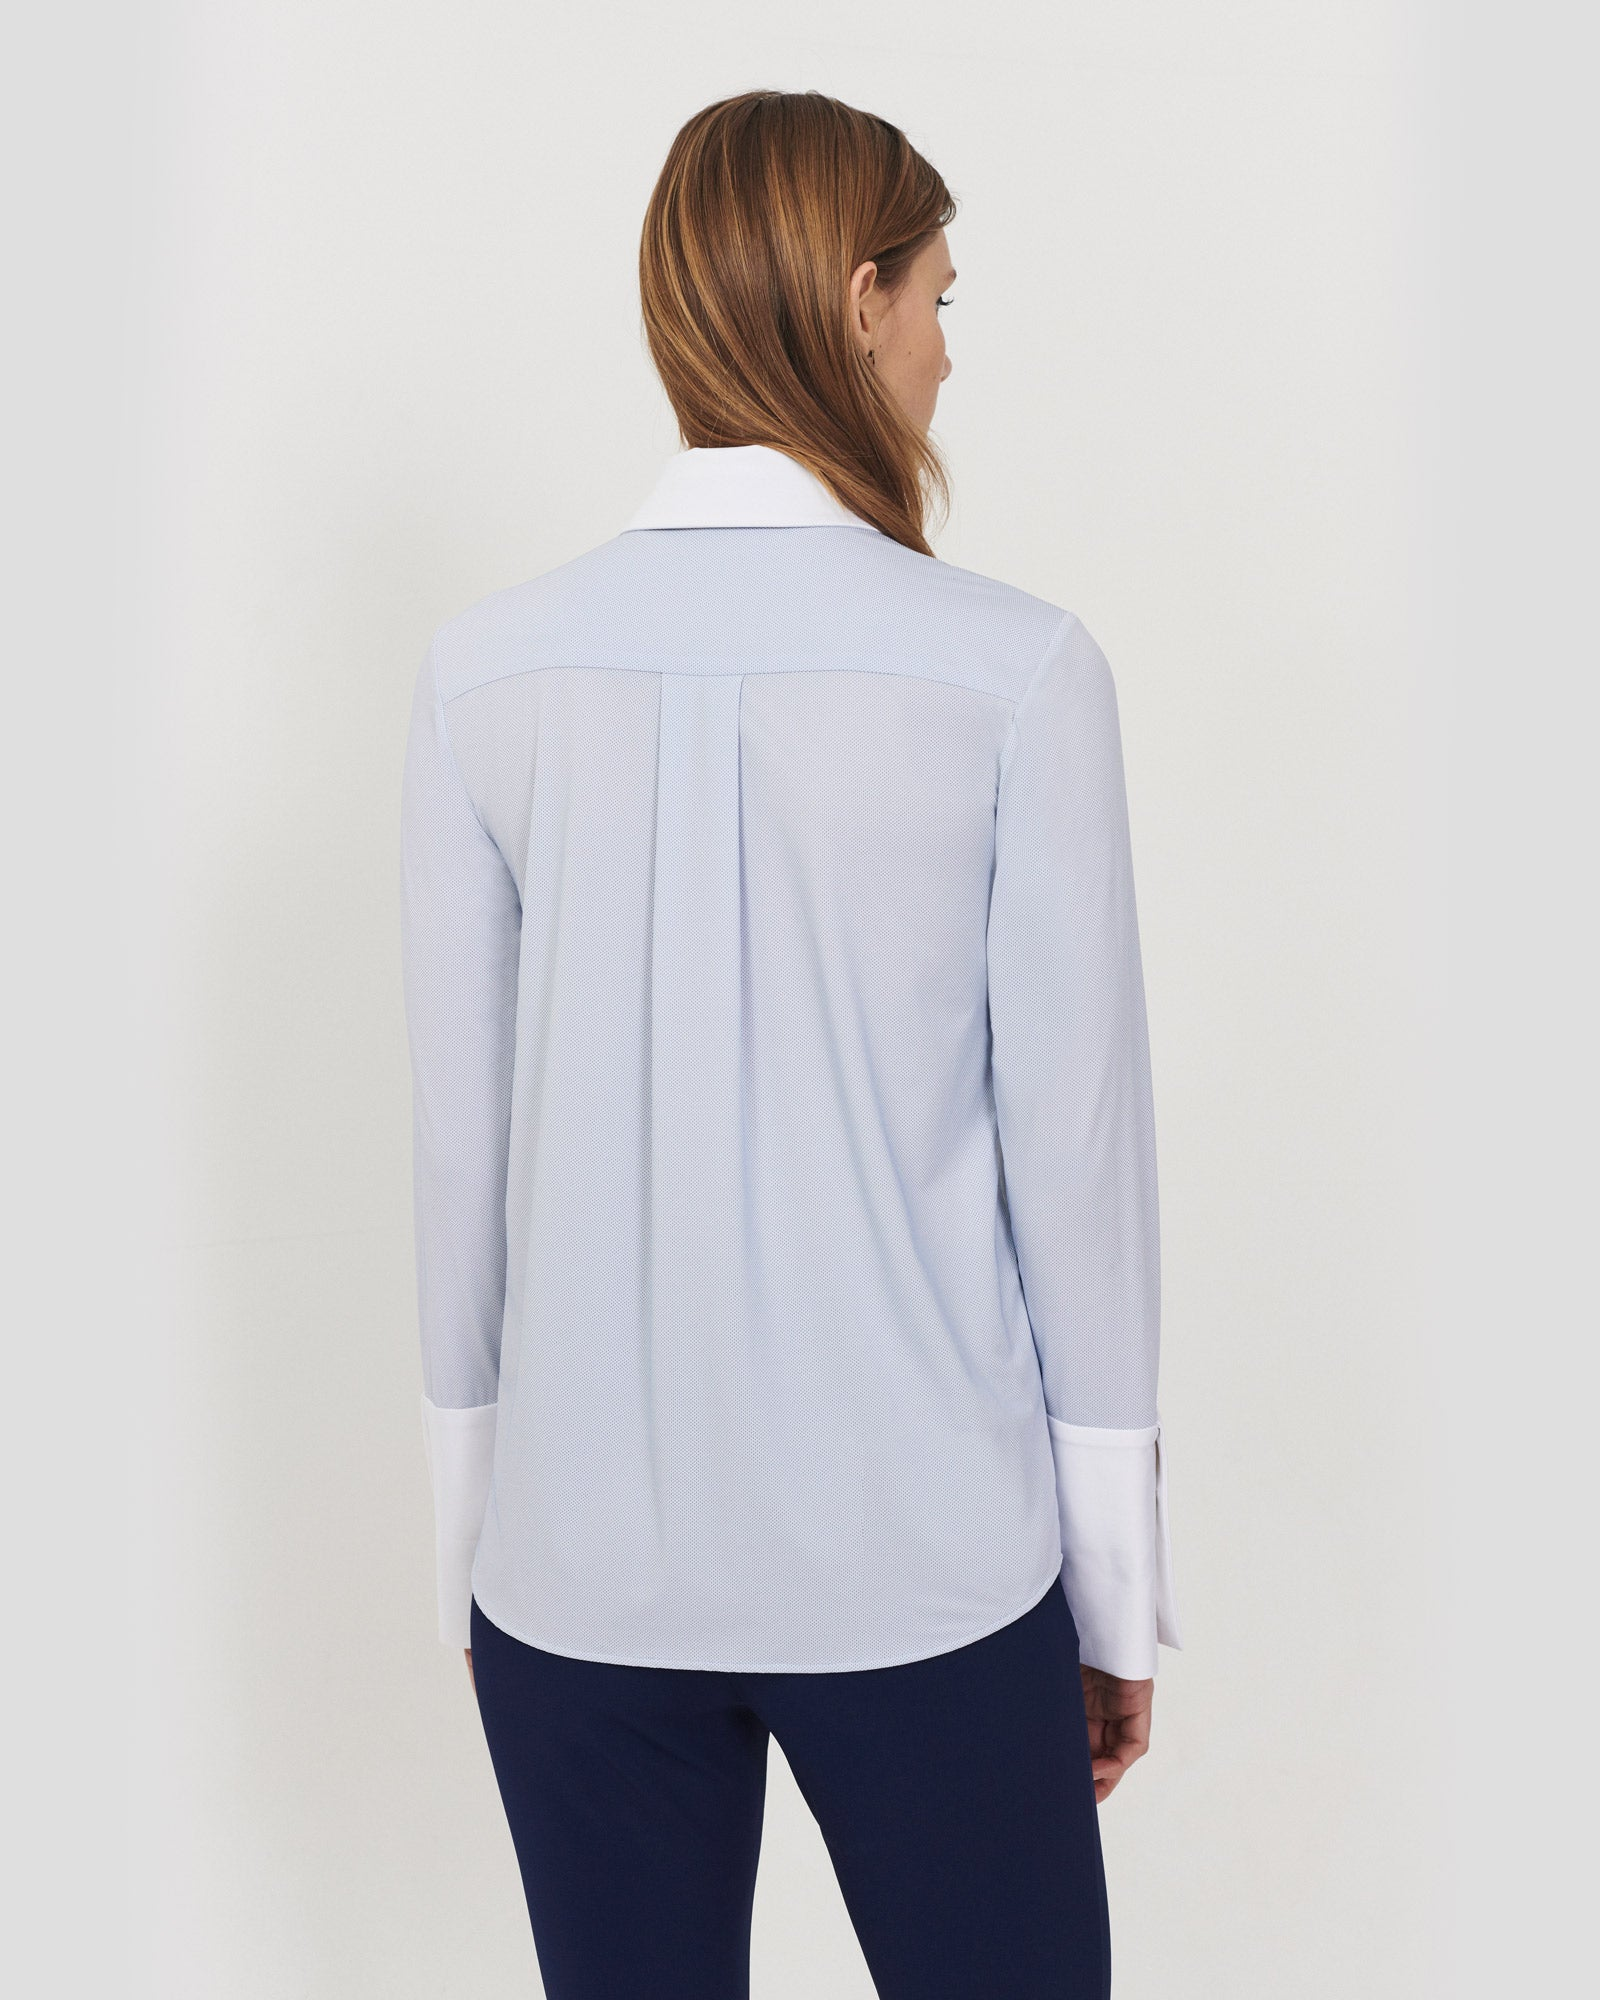 Now and Forever Blouse Technical Sky 2.0